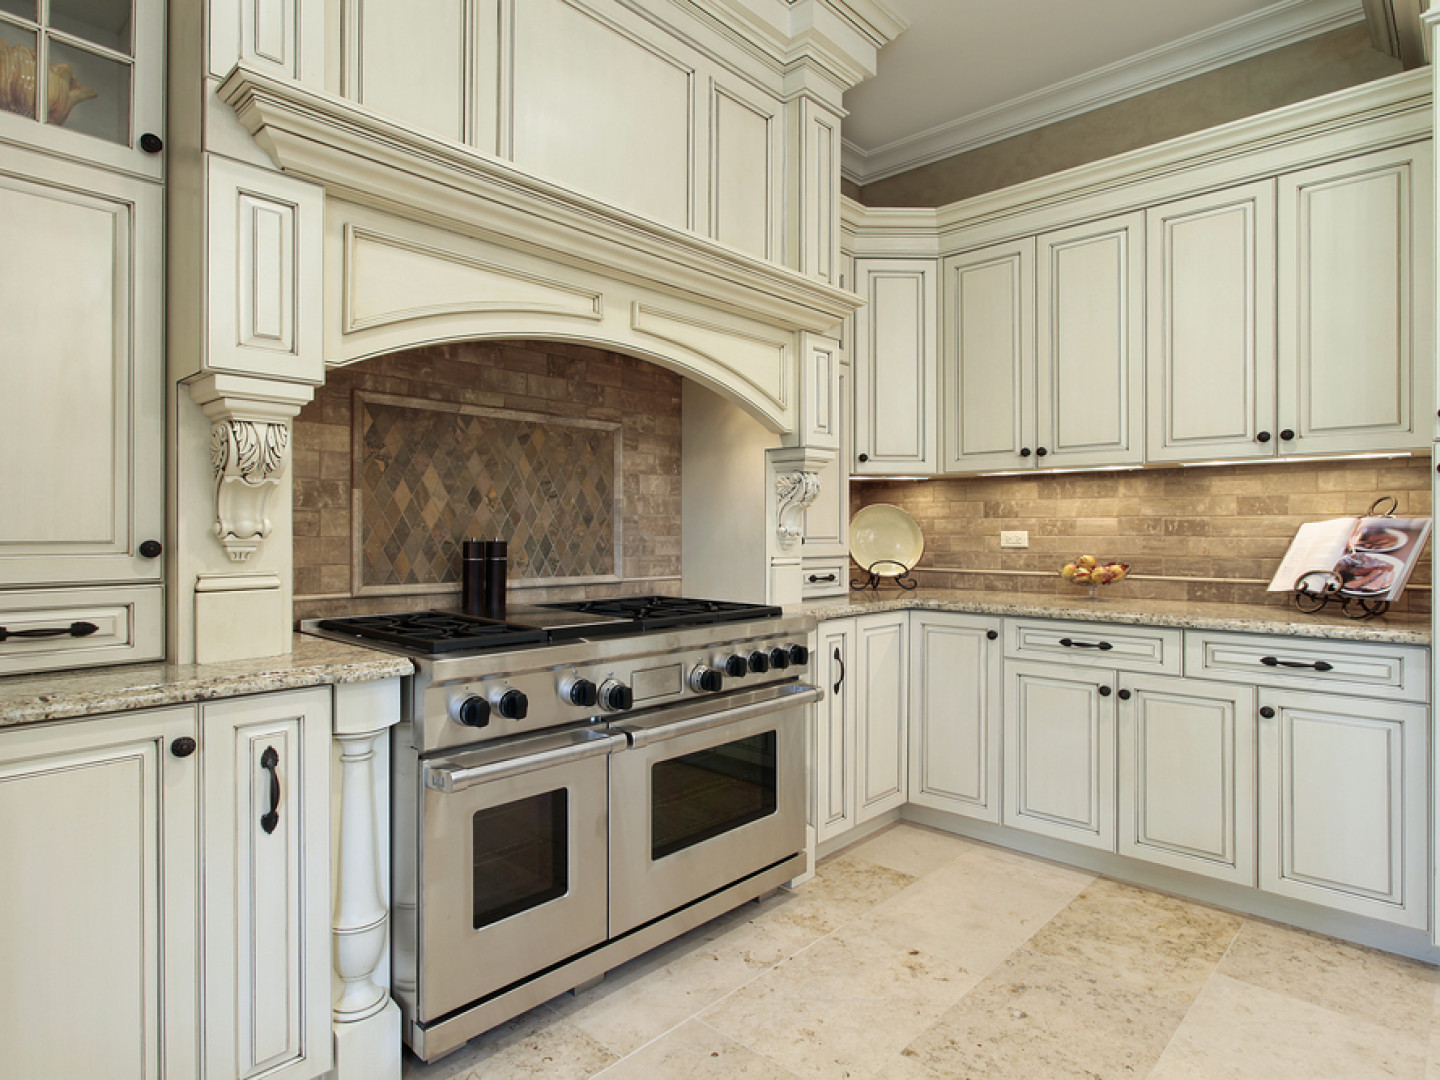 Does your kitchen need more than new cabinets?